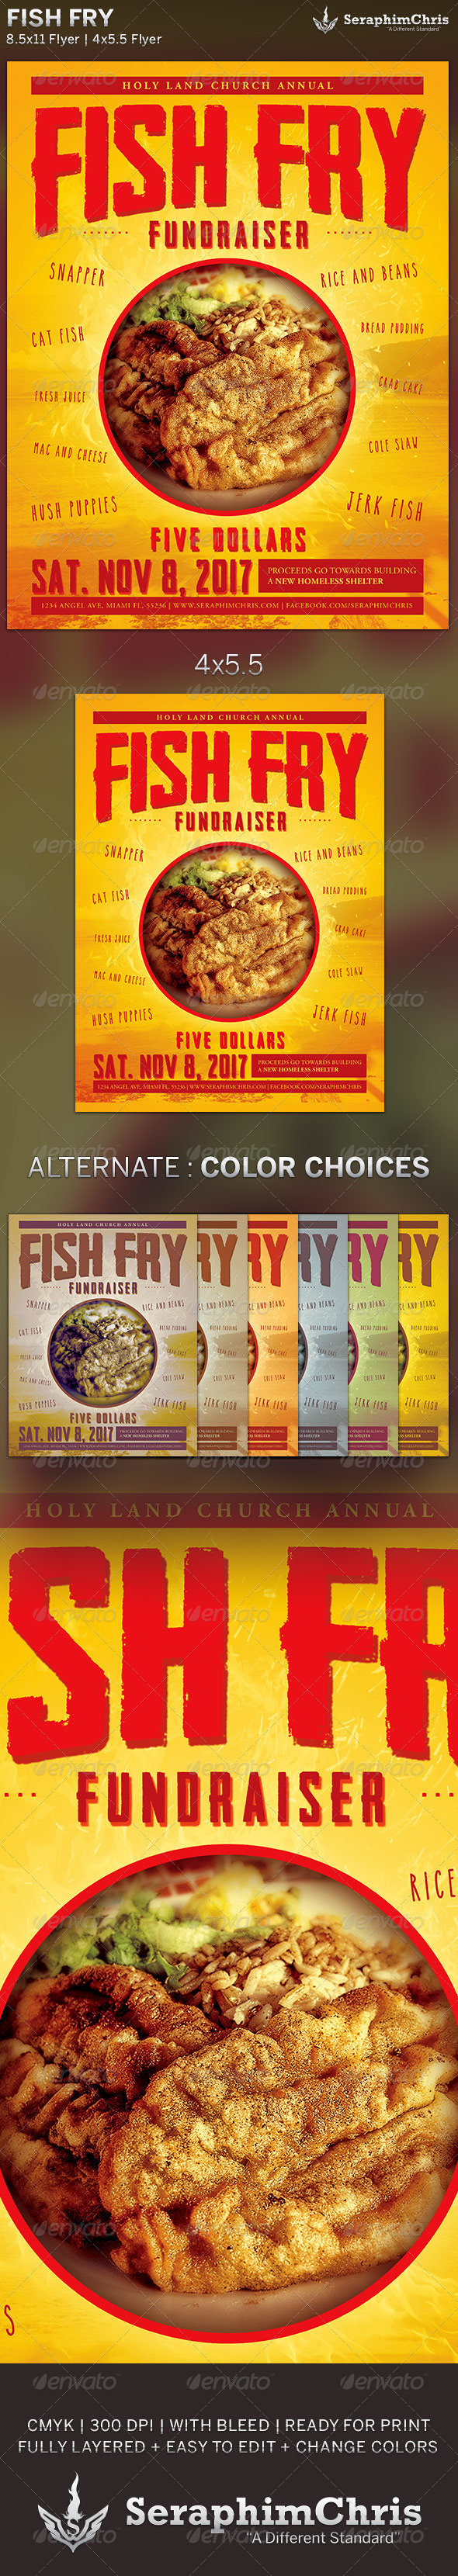 Fish Fry: Event Flyer Template - Events Flyers